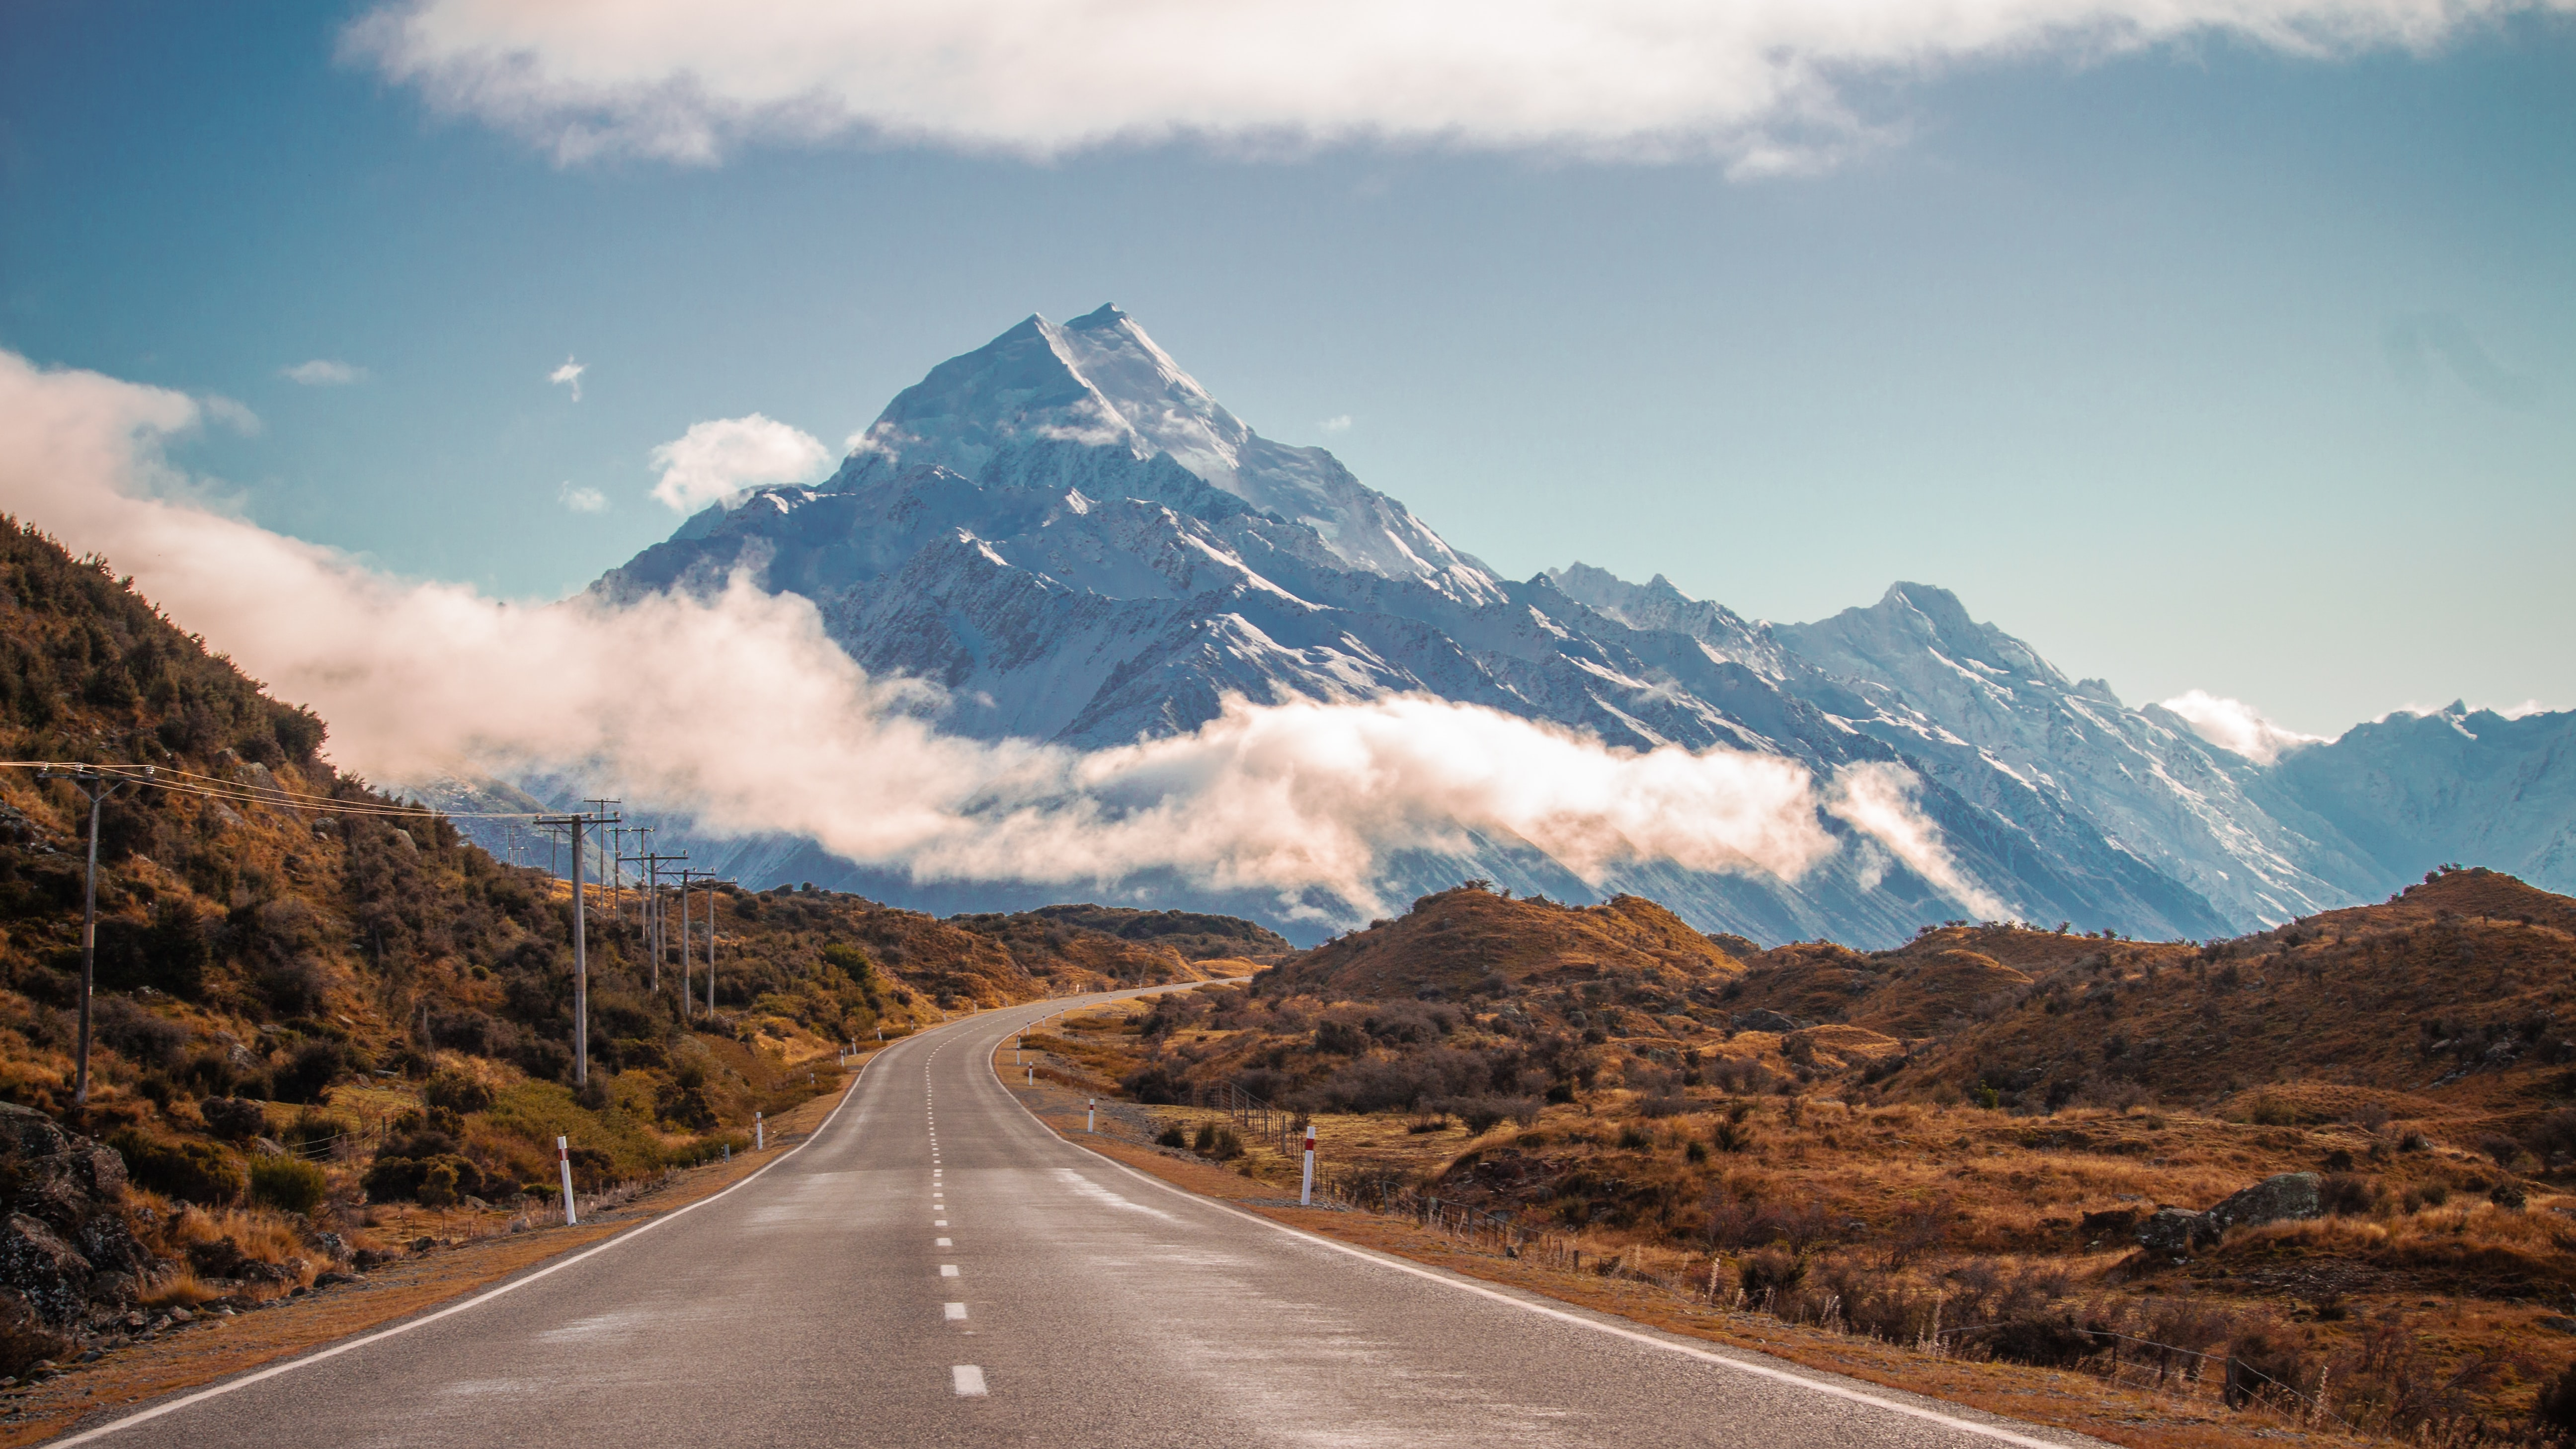 An empty bending road near the towering Mount Cook